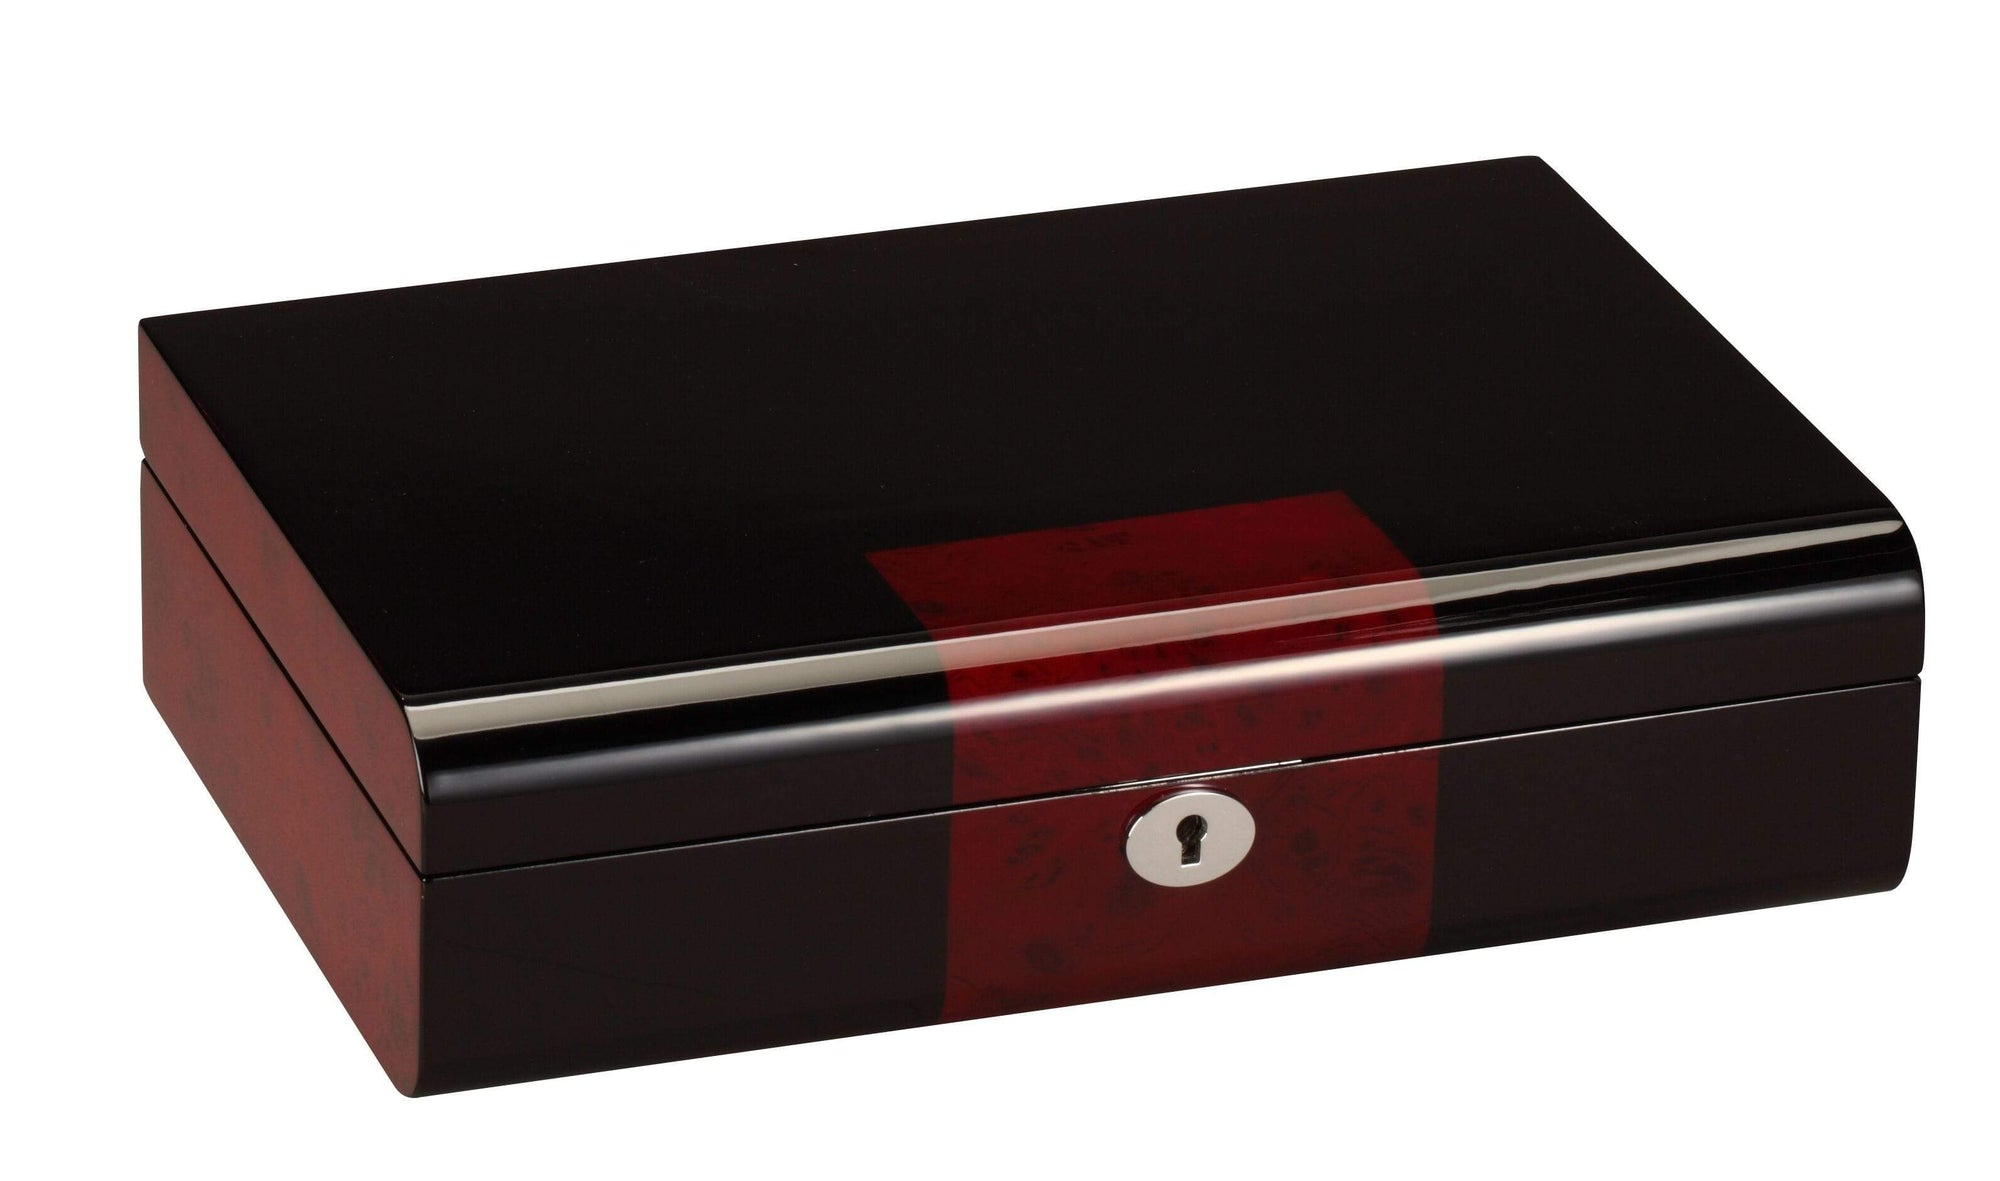 Diplomat Black Wood Finish Ten Watch Storage Case with Cherry Wood Finish Accents and Soft Microfiber Black Suede Interior Armadillo Safe and Vault